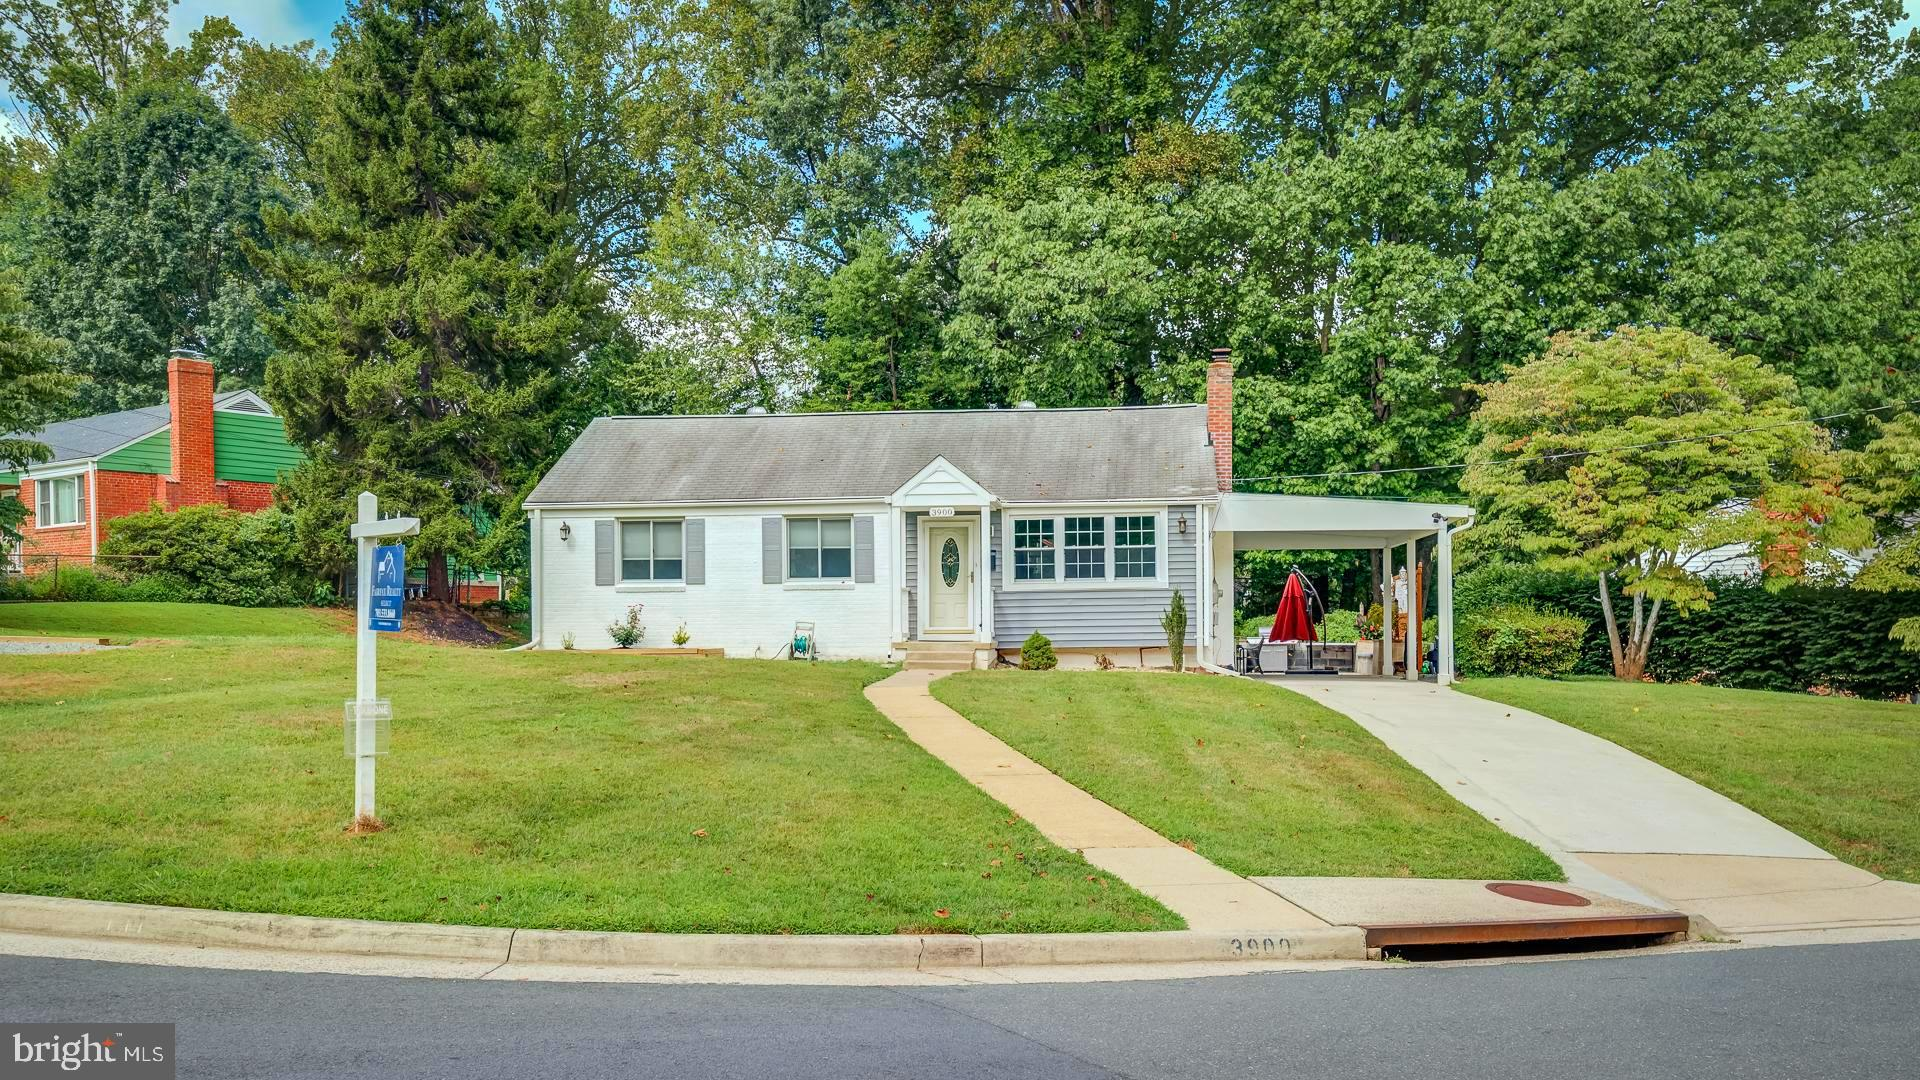 Excellent location.  Meticulously remodeled Rambler.  Inside the Beltway.   Close to I-495, Columbia Pike, and I-395.  Shopping, dining, Mosaic District.   The home is a morning delight.  Beautifully lighted with ample natural light.  Adjustable recessed lights throughout in order to brighten up as desired.  Attic fully finished with Central fed AC, recessed lights and carpeted~ Ingenious permanent staircase to the attic!.  USB equipped power outlets.  Basement fully finished, recessed lights, gorgeous full bath and own entrance from the patio.  HVAC Replaced less than 12 months ago, AC Unit replaced 3 years ago.  Electric wiring and plumbing also replaced.  Easy to navigate kitchen. Flawless transition from kitchen to a fully windowed dining room with AC vent for a confortable and fabulous Natural light dining experience~Dining room harmoniously integrates outside living via French door access to the patio~Patio!.  Mature trees block sunlight after 3:00pm, making the patio an exciting retreat.  And of course, Grilling enthusiasts will appreciate the double valve gas fed system coming from the house for a delightful Grilling experience~This home is a MUST SEE!!!